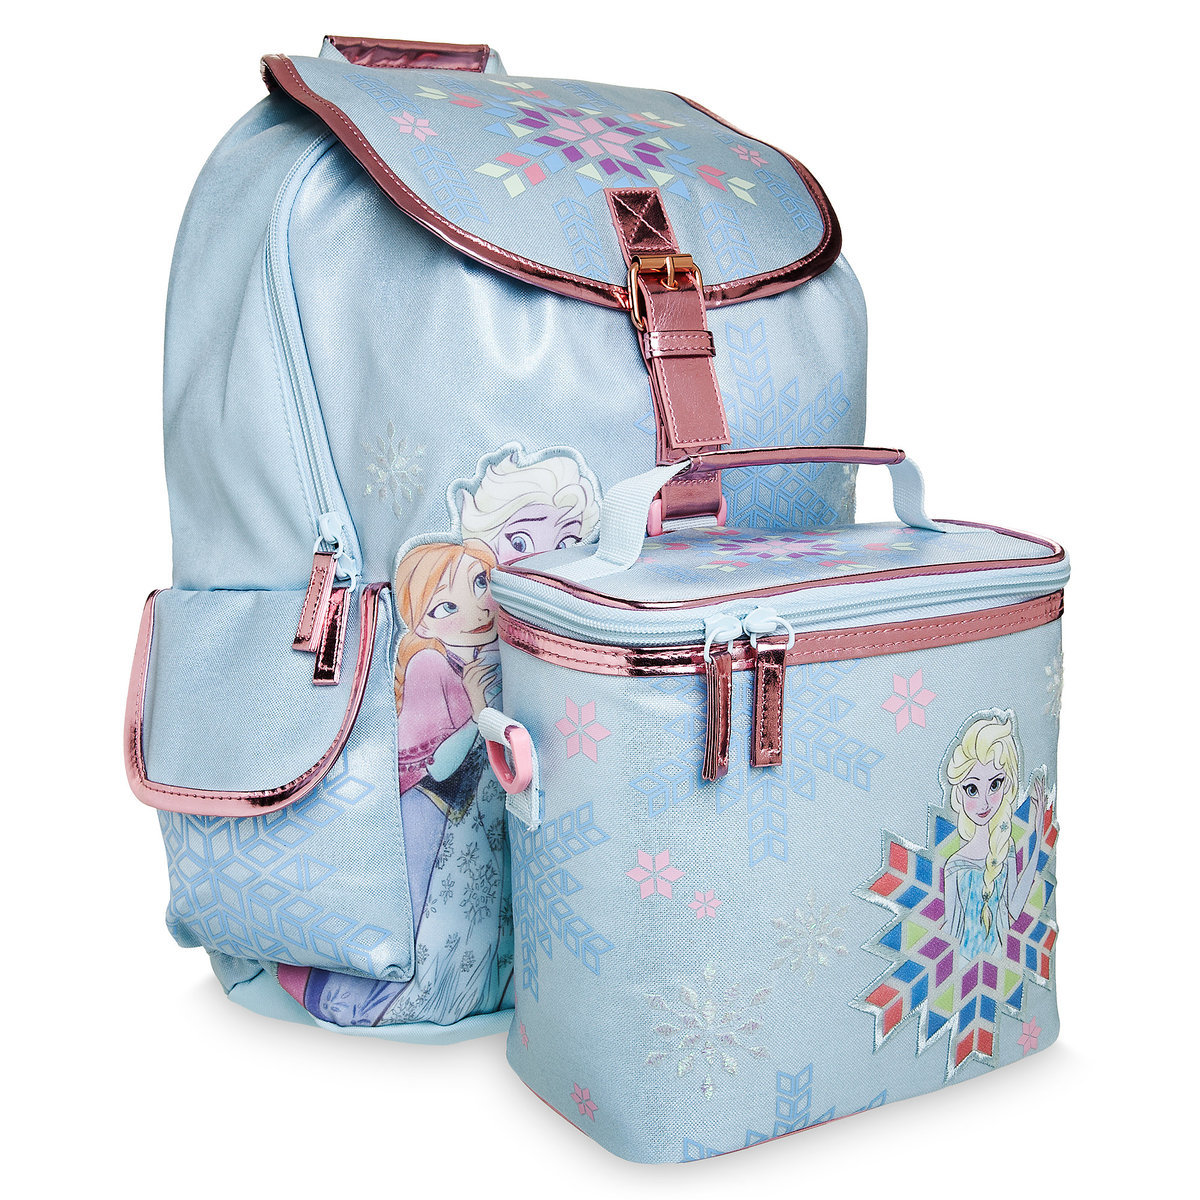 9debc2818d7 Product Image of Frozen Backpack and Lunch Tote Collection   1